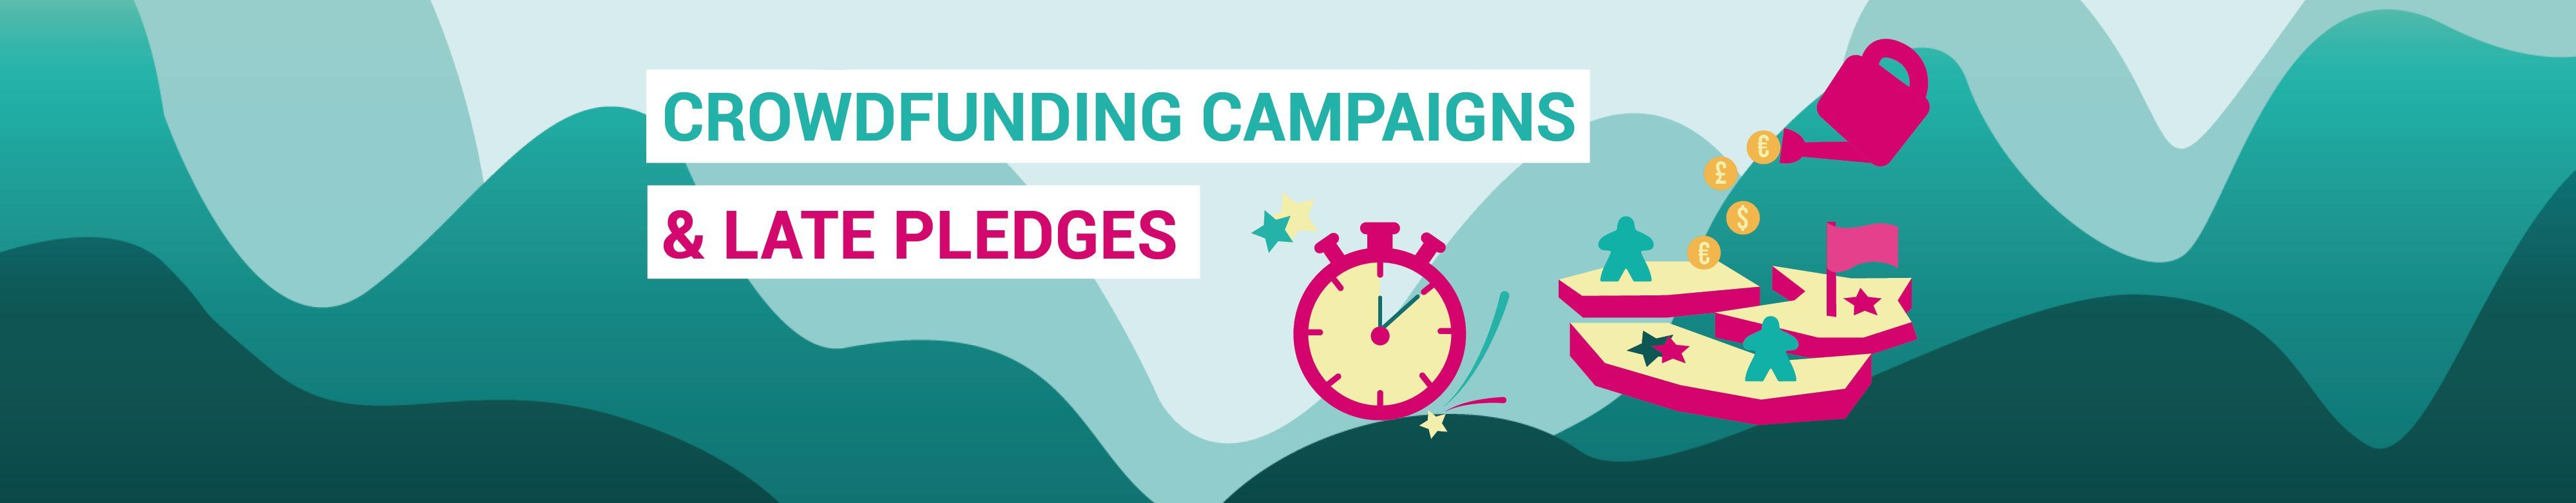 Crowdfunding Campaigns & late pledges